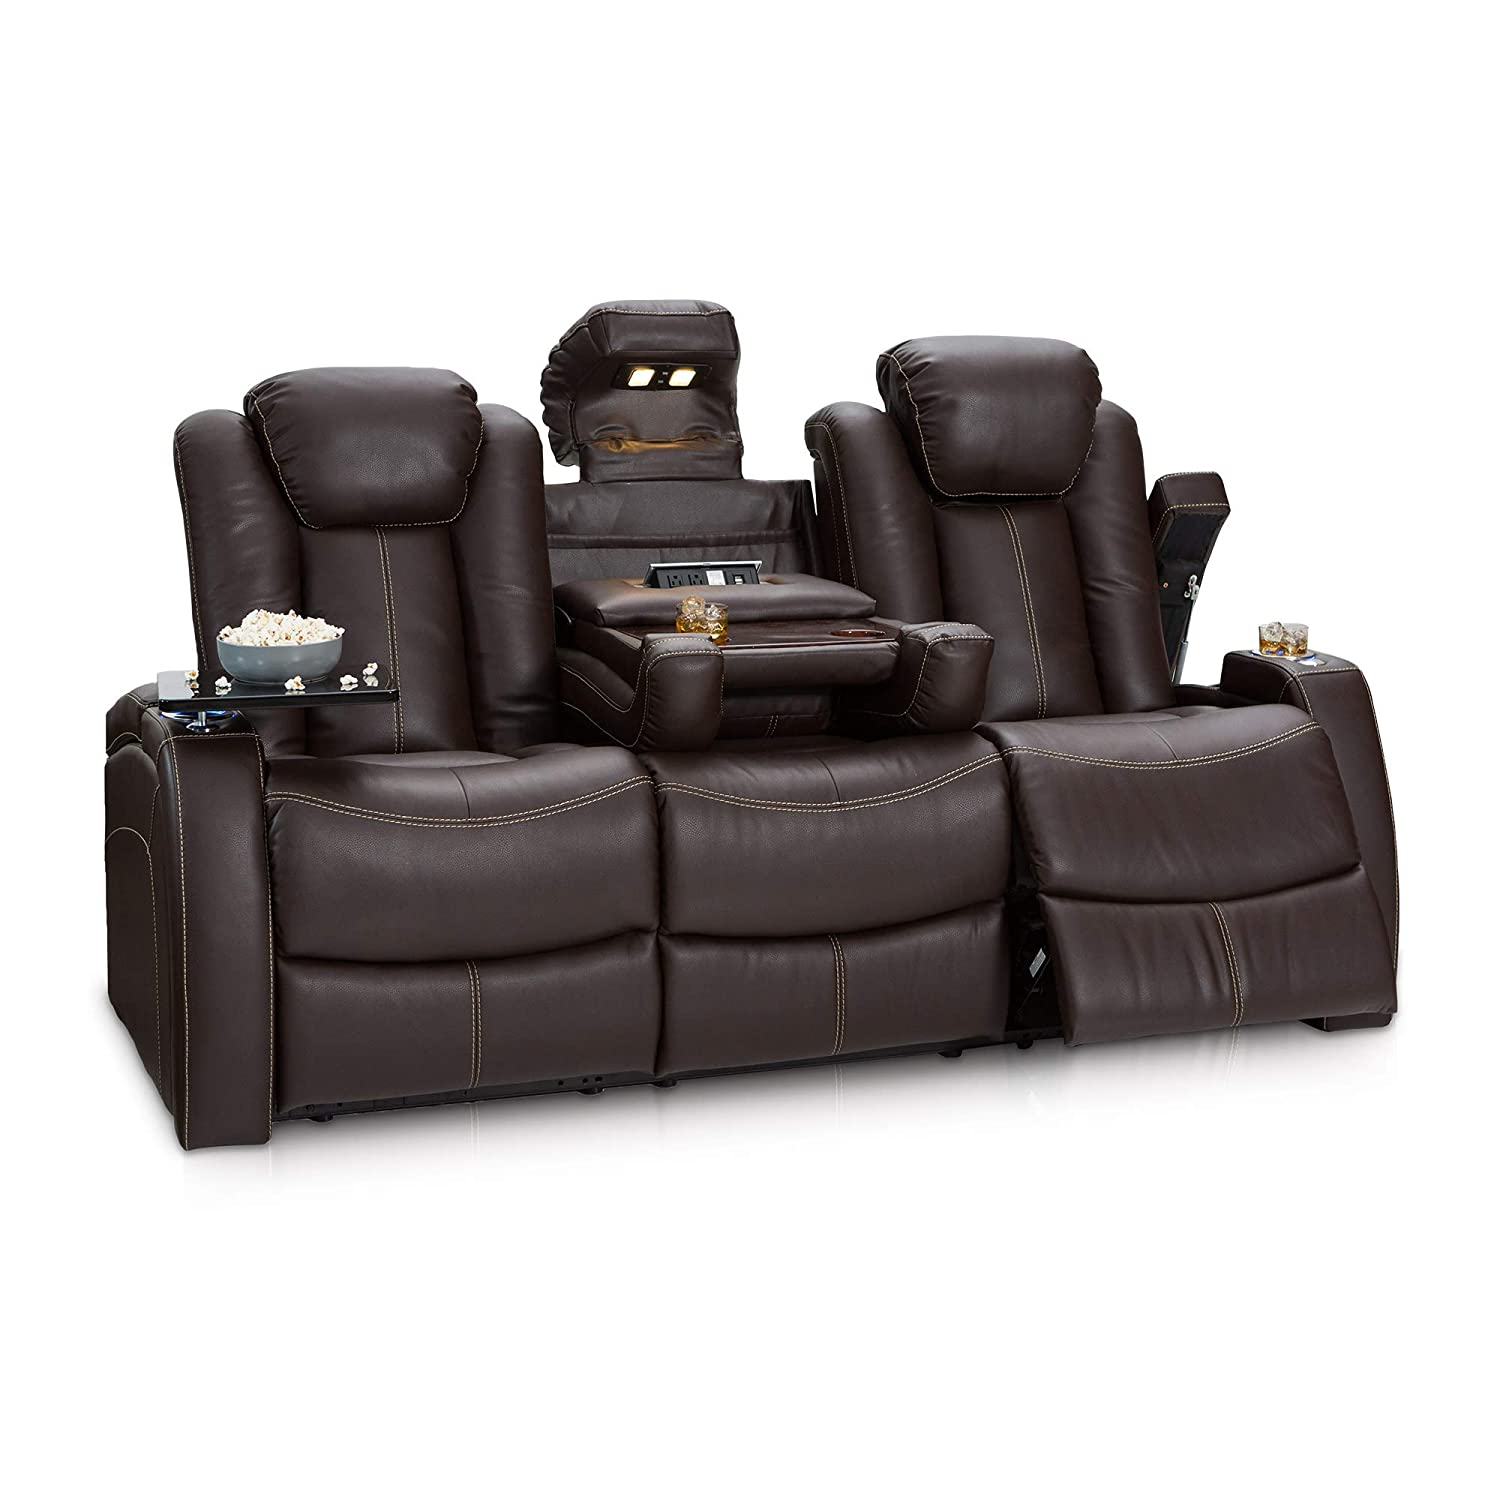 Seatcraft 162E51151559-V1 Omega Home Theater Seating Leather Gel Recline Sofa with Adjustable Powered Headrests, Fold-Down Table, and Lighted Cup ...